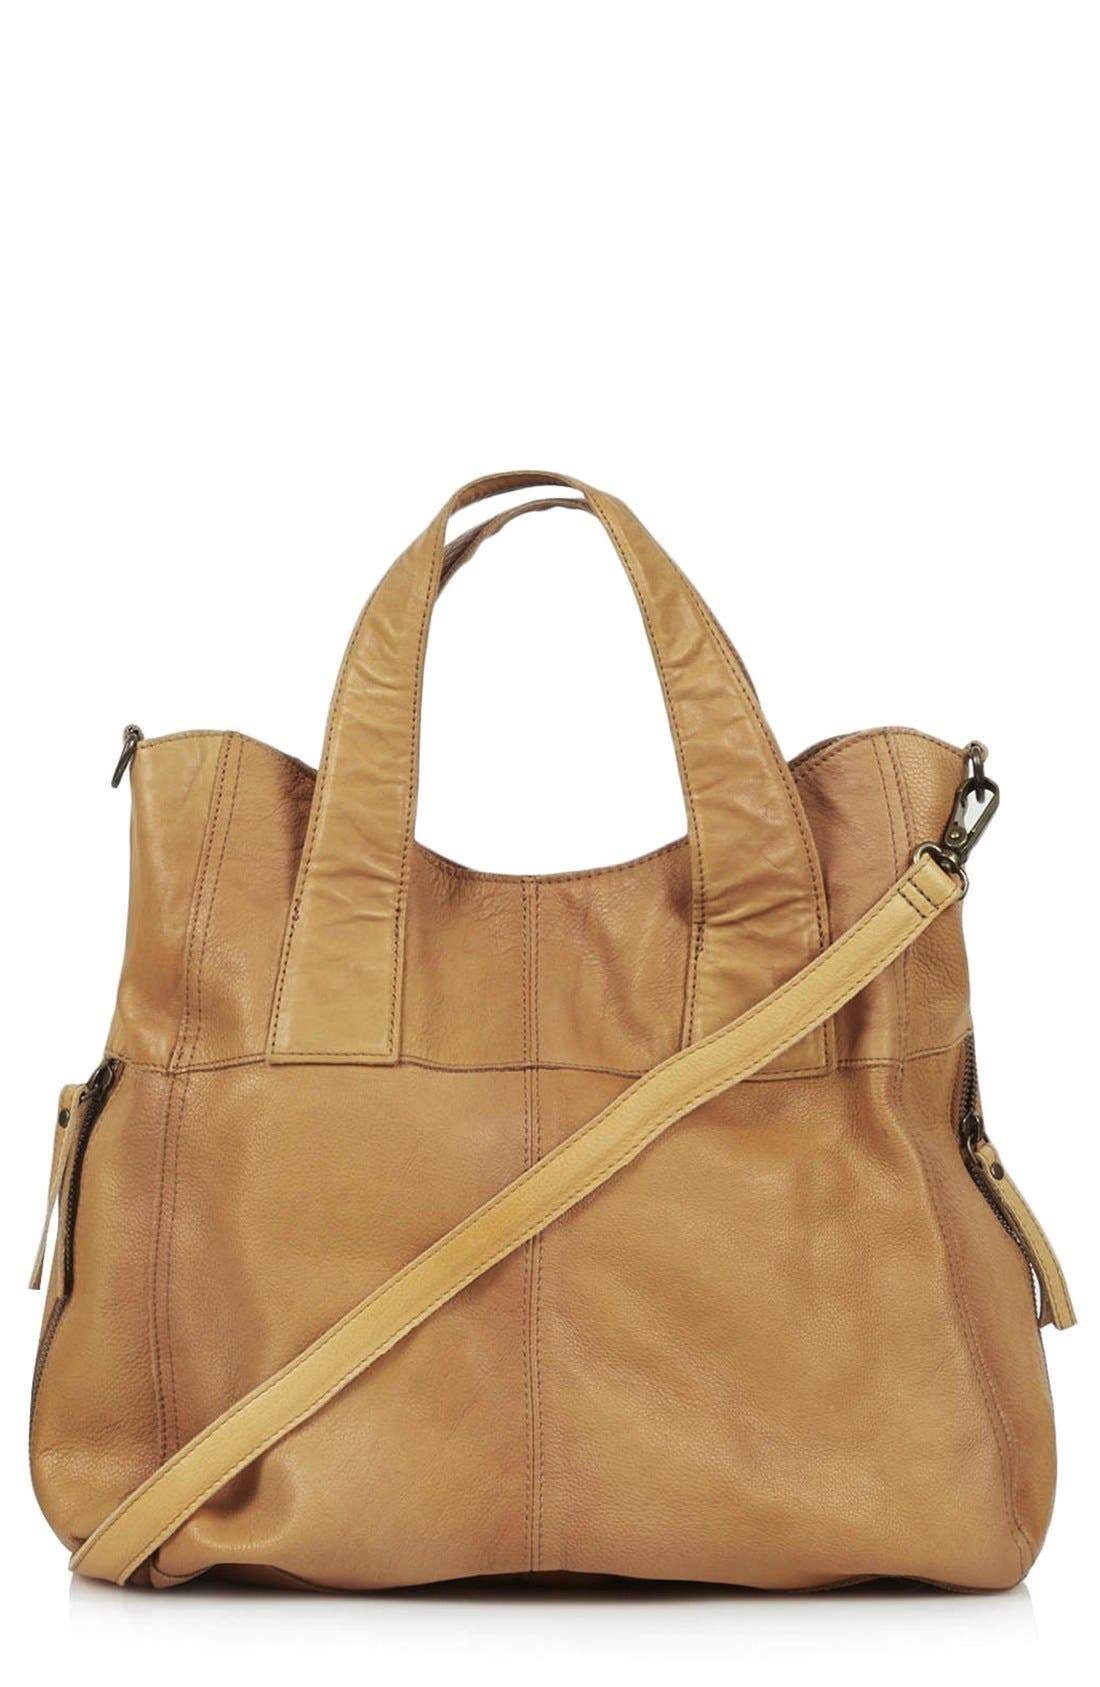 Main Image - Topshop 'Alba' Leather Hobo Bag